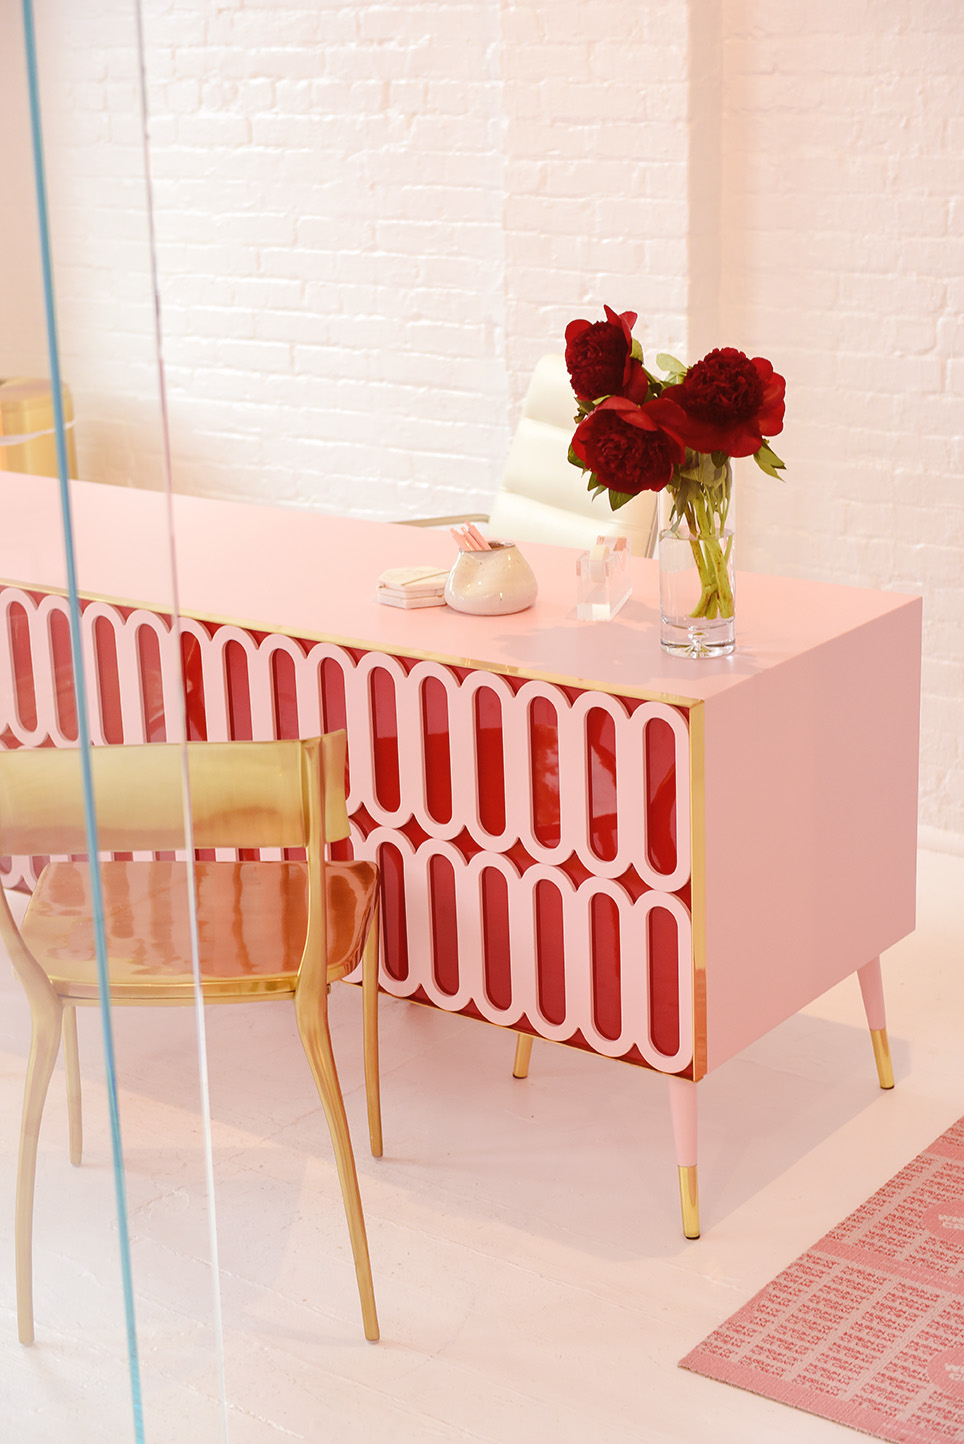 Bespoke Desk Project by Royal Stranger for Museum of Ice Cream